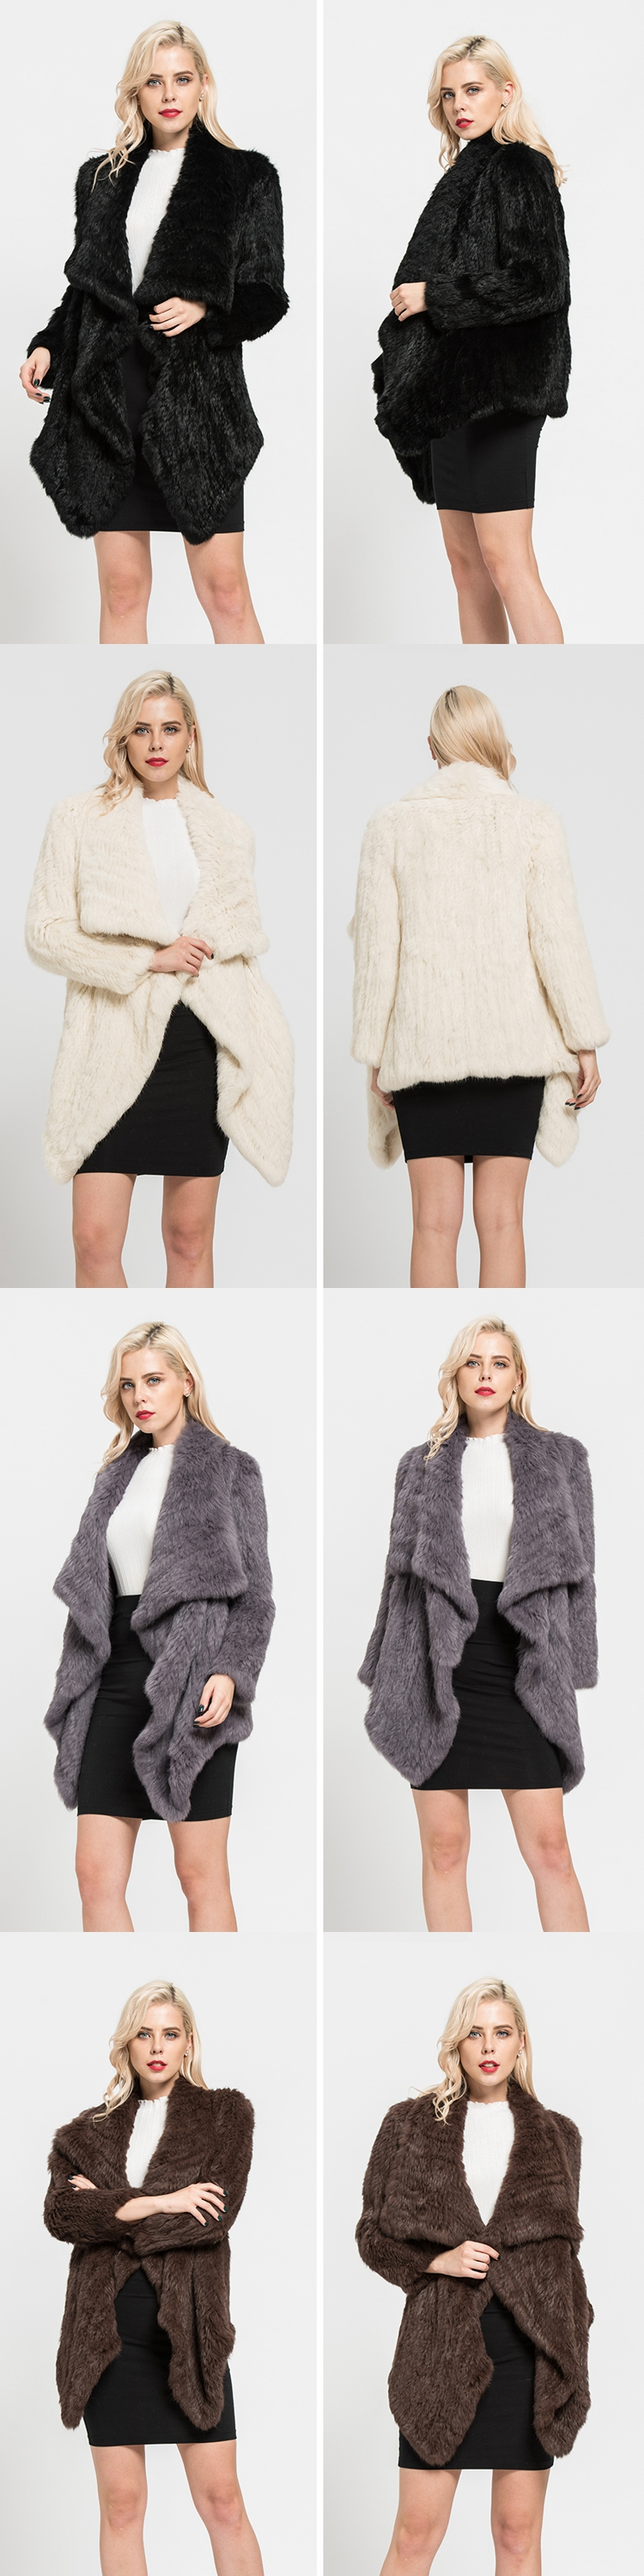 2019 Real Rabbit Fur Knitted Coats Top Quality Fashion Style For Female Winter Thick Warm Jacket S7114